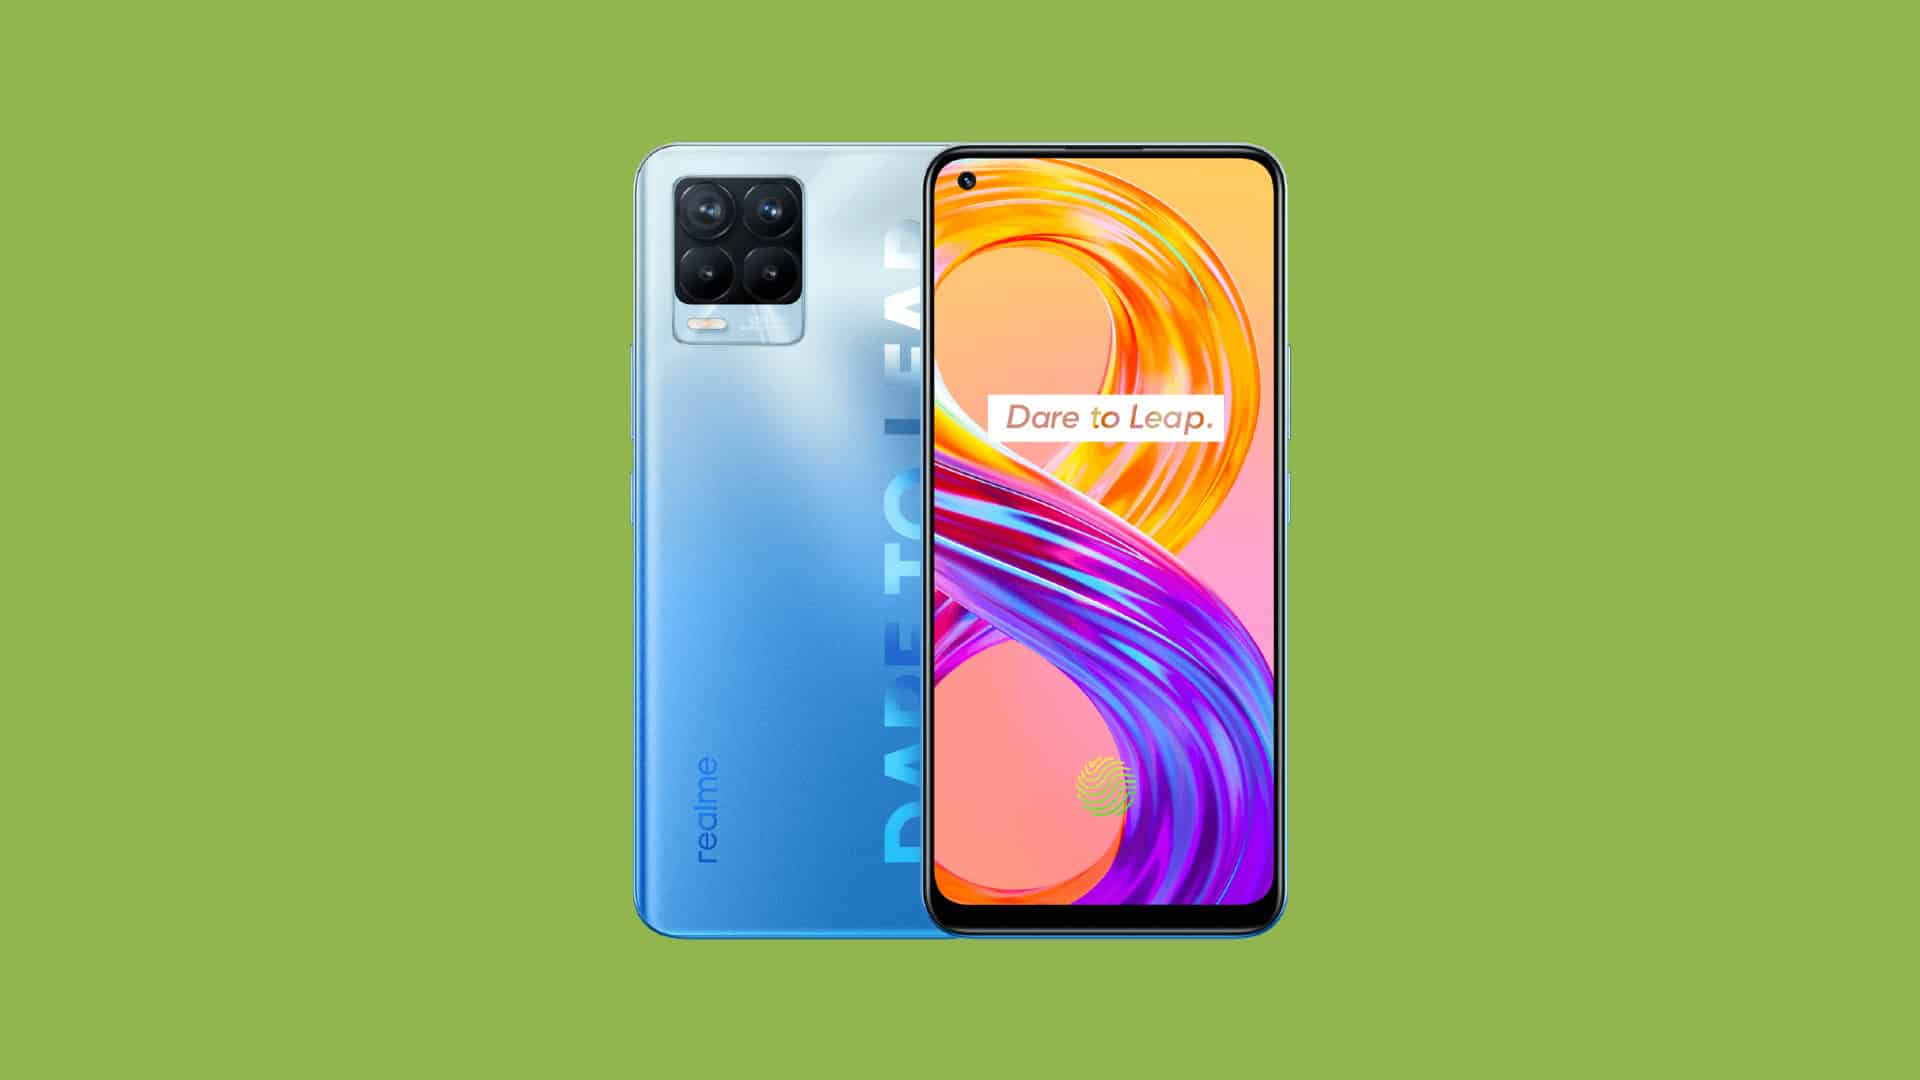 RMX3081_11_A.33 - Realme 8 Pro May 2021 update